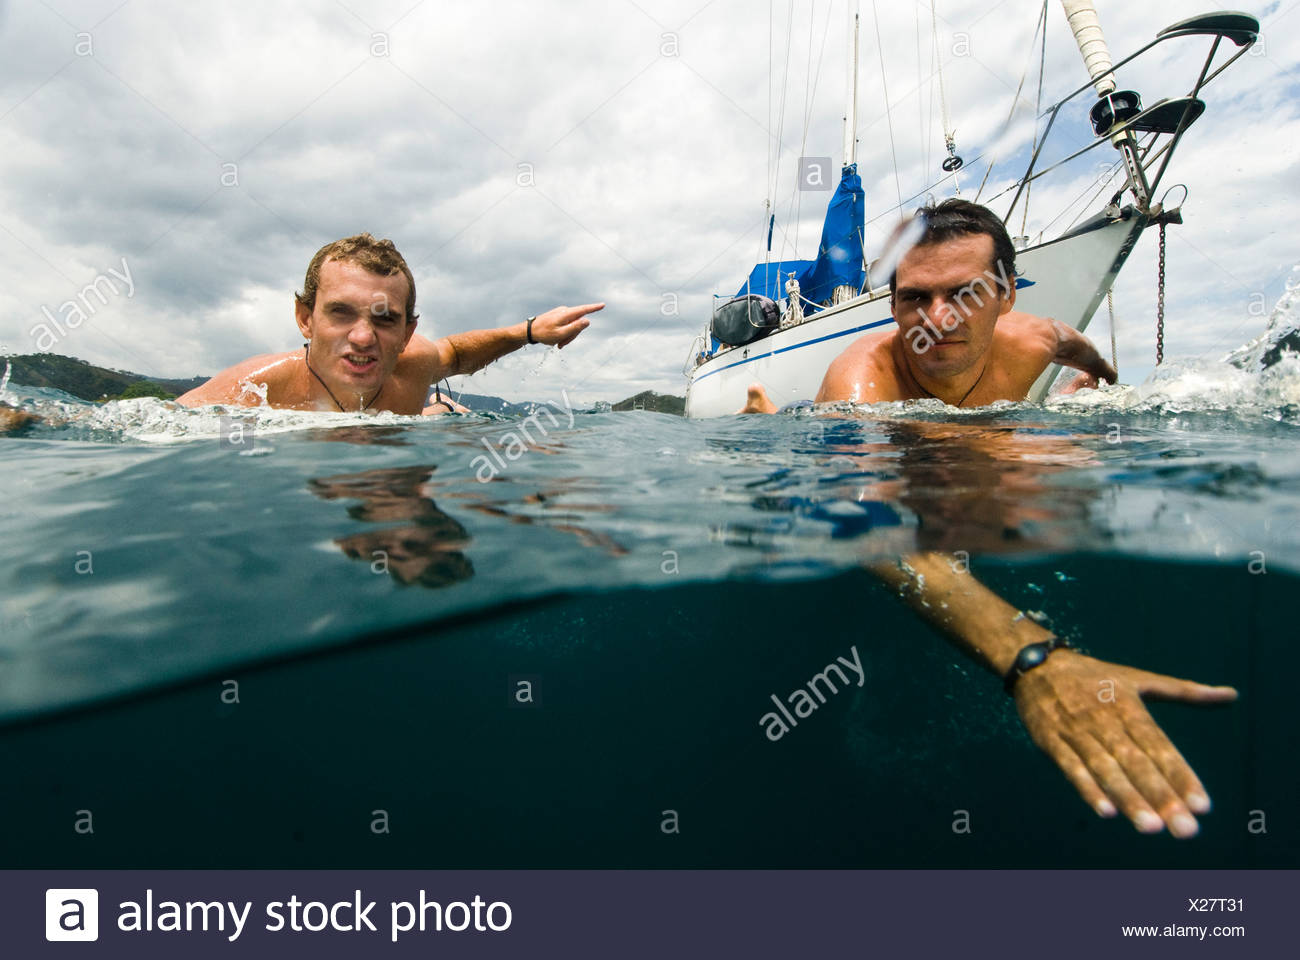 Two guys heading out for surf in Costa Rica - Stock Image